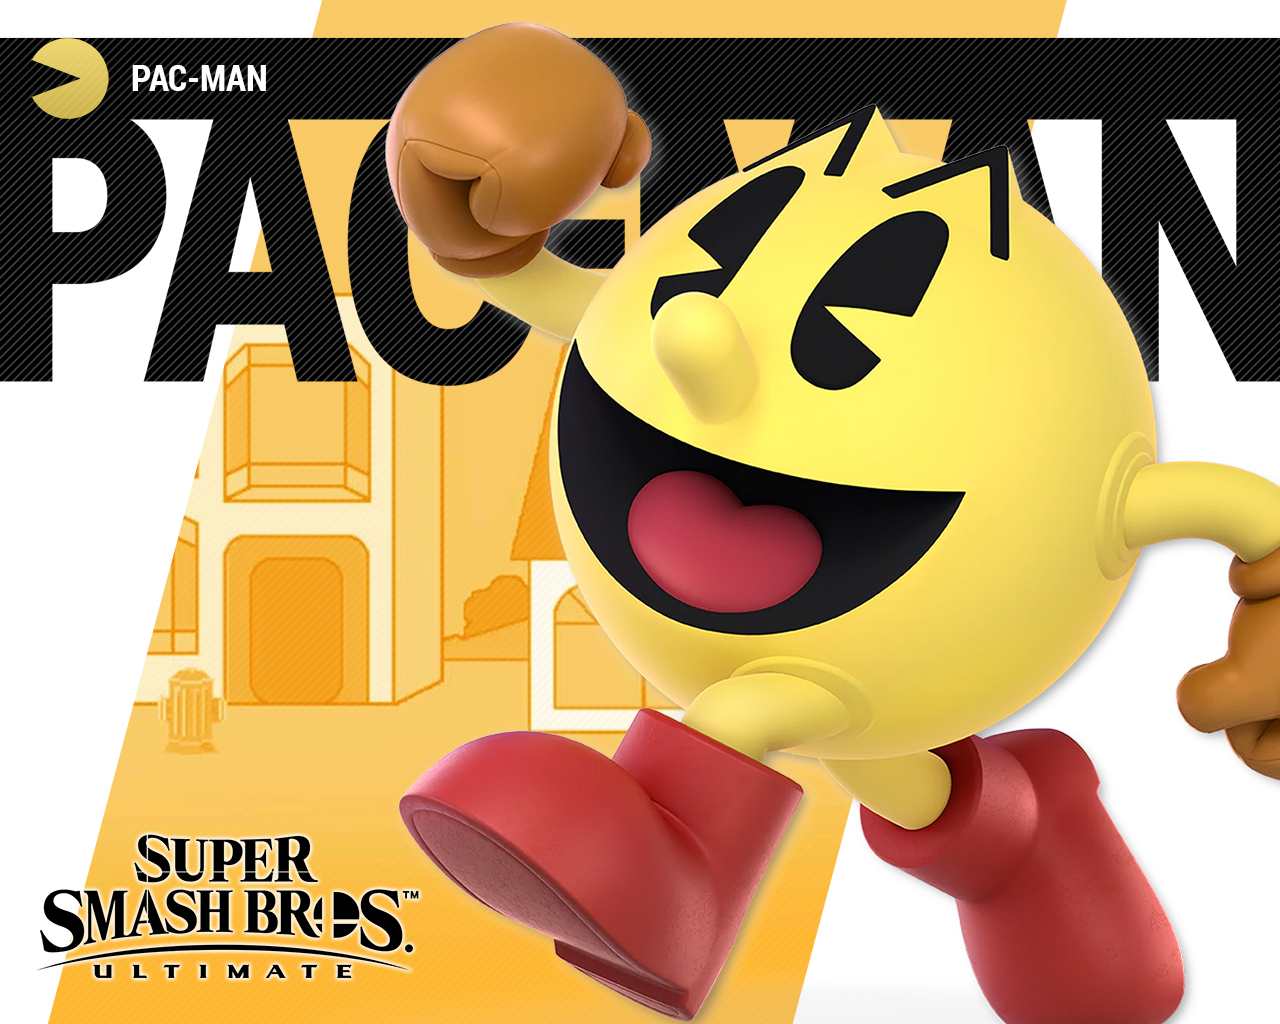 Super Smash Bros Ultimate Pac Man Wallpapers Cat With Monocle